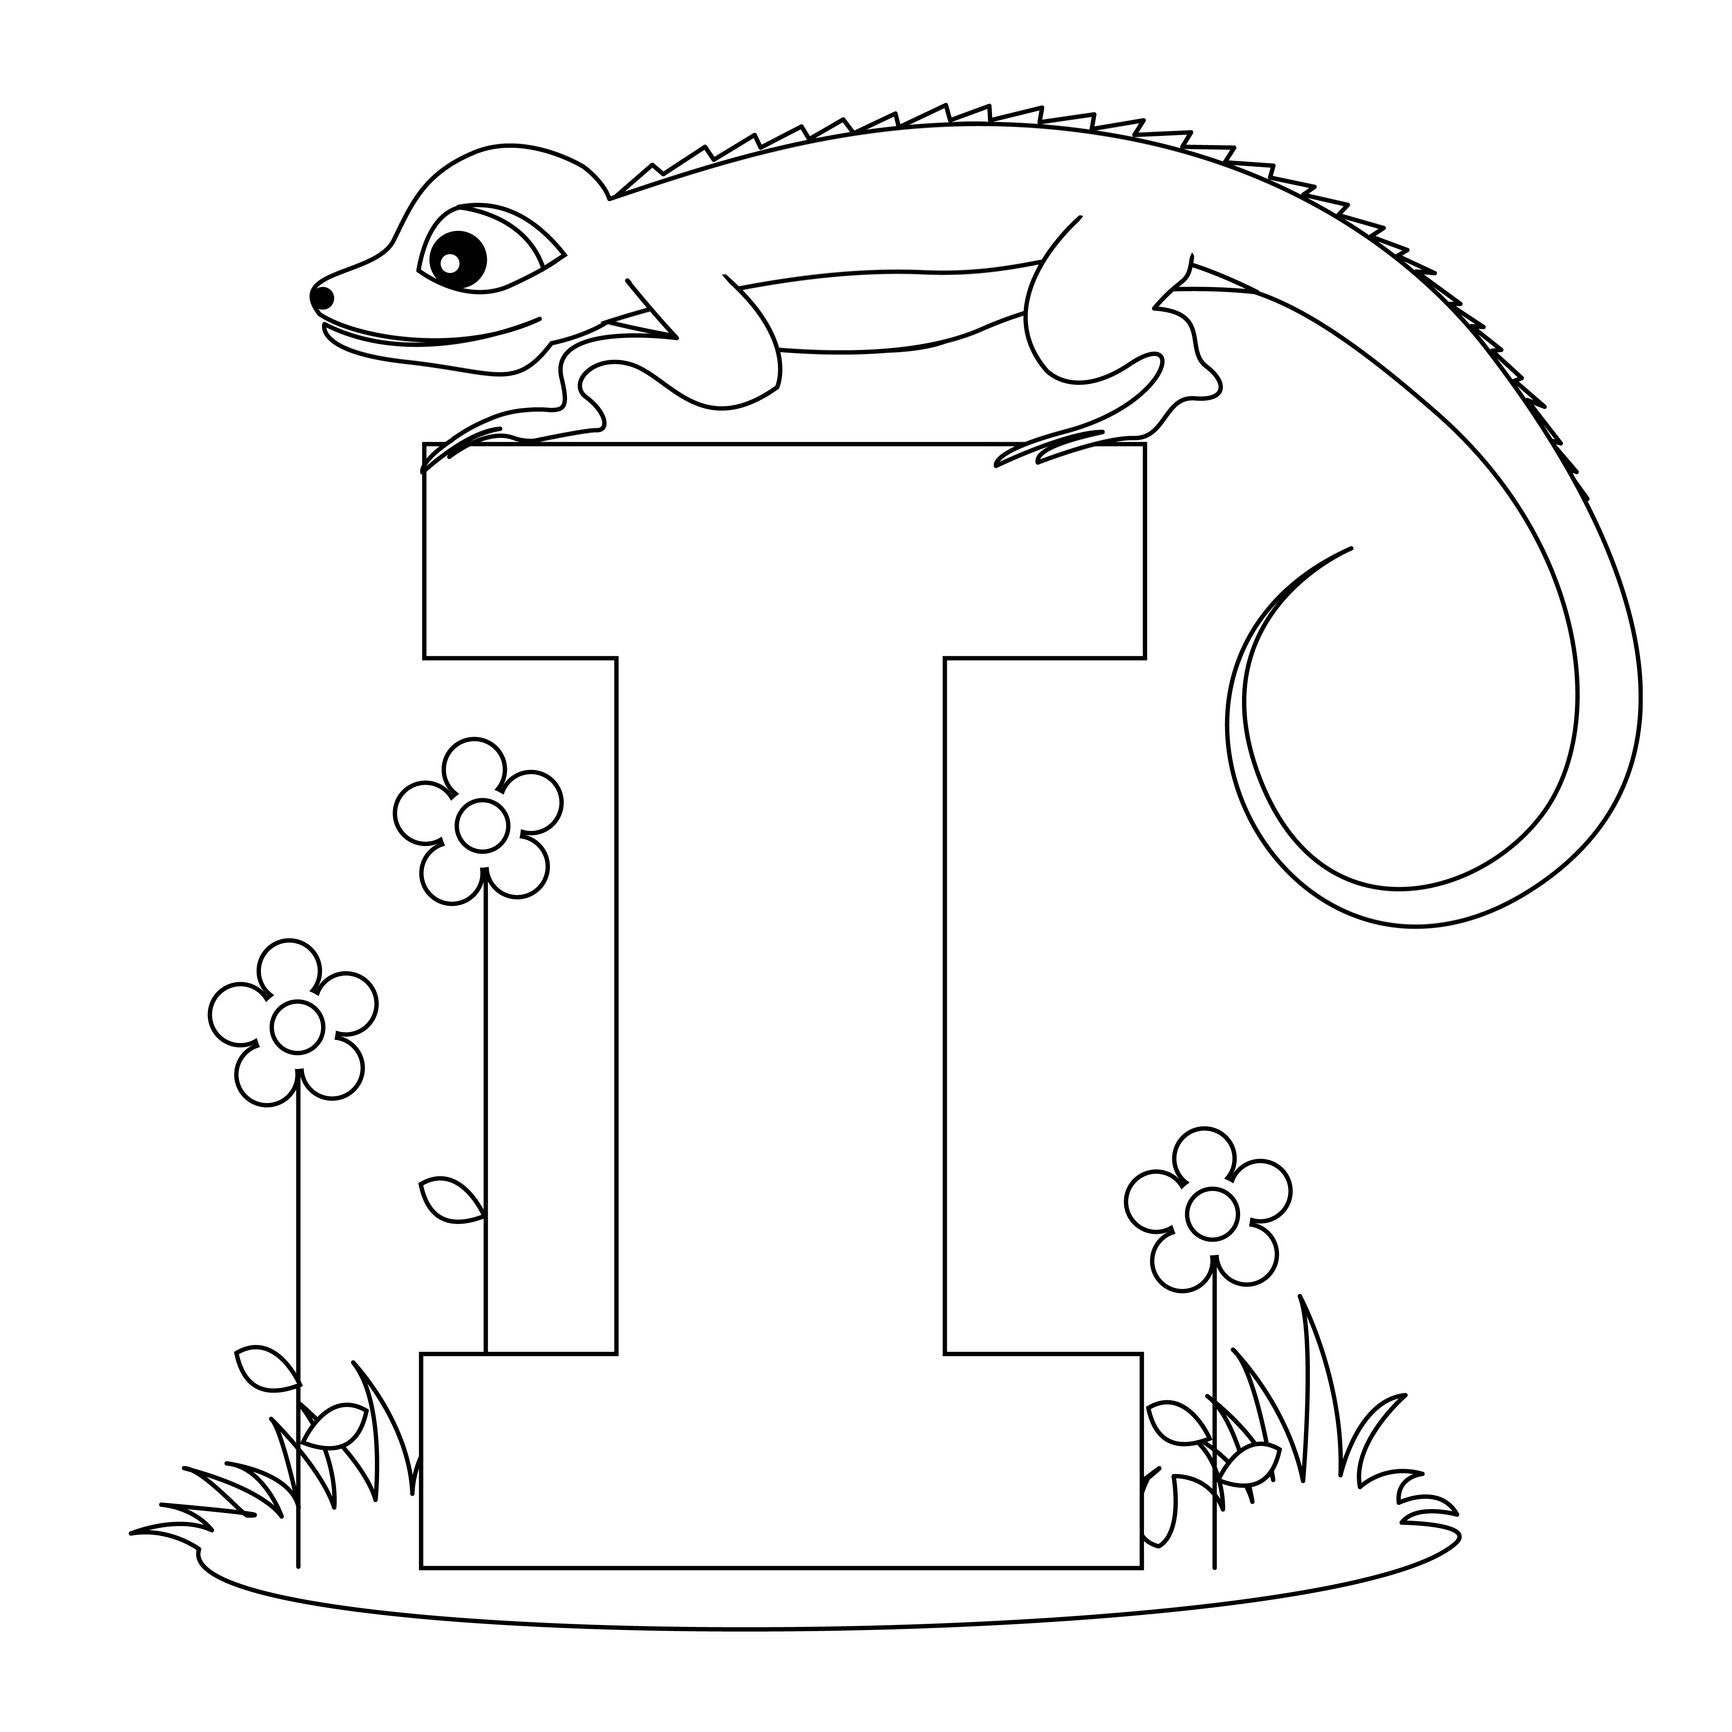 Pre k coloring pages alphabet - Image Detail For Animal Alphabet Letter I Coloring Worksheet From Kiboomu Worksheets